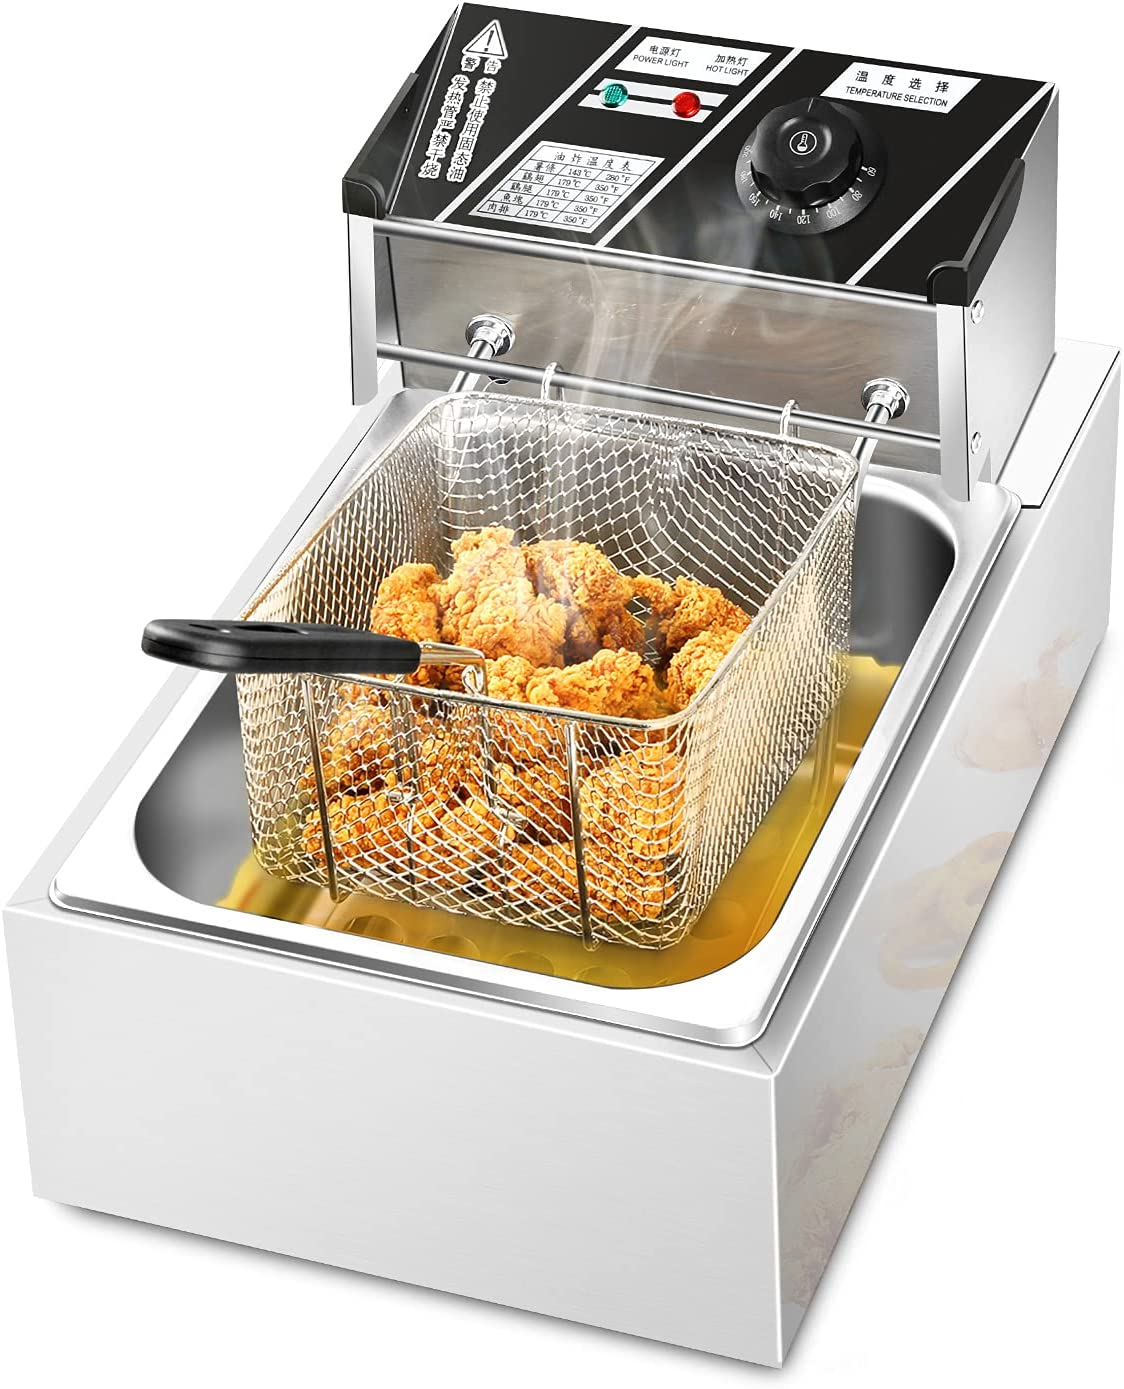 1700W Electrical Deep Fryer 6.3QT/6L Stainless Steel Kitchen Frying Machine for French Fries Onion Rings Turkey Fish and Chips